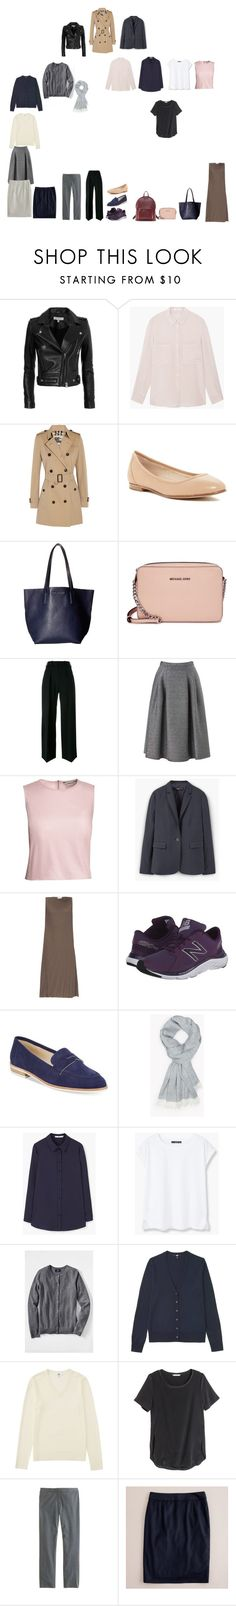 """Ksenia - basics - spring-summer"" by white-witch on Polyvore featuring мода, IRO, MANGO, Burberry, Via Spiga, Marc Jacobs, Michael Kors, Neil Barrett, Phase Eight и Canvas by Lands' End"